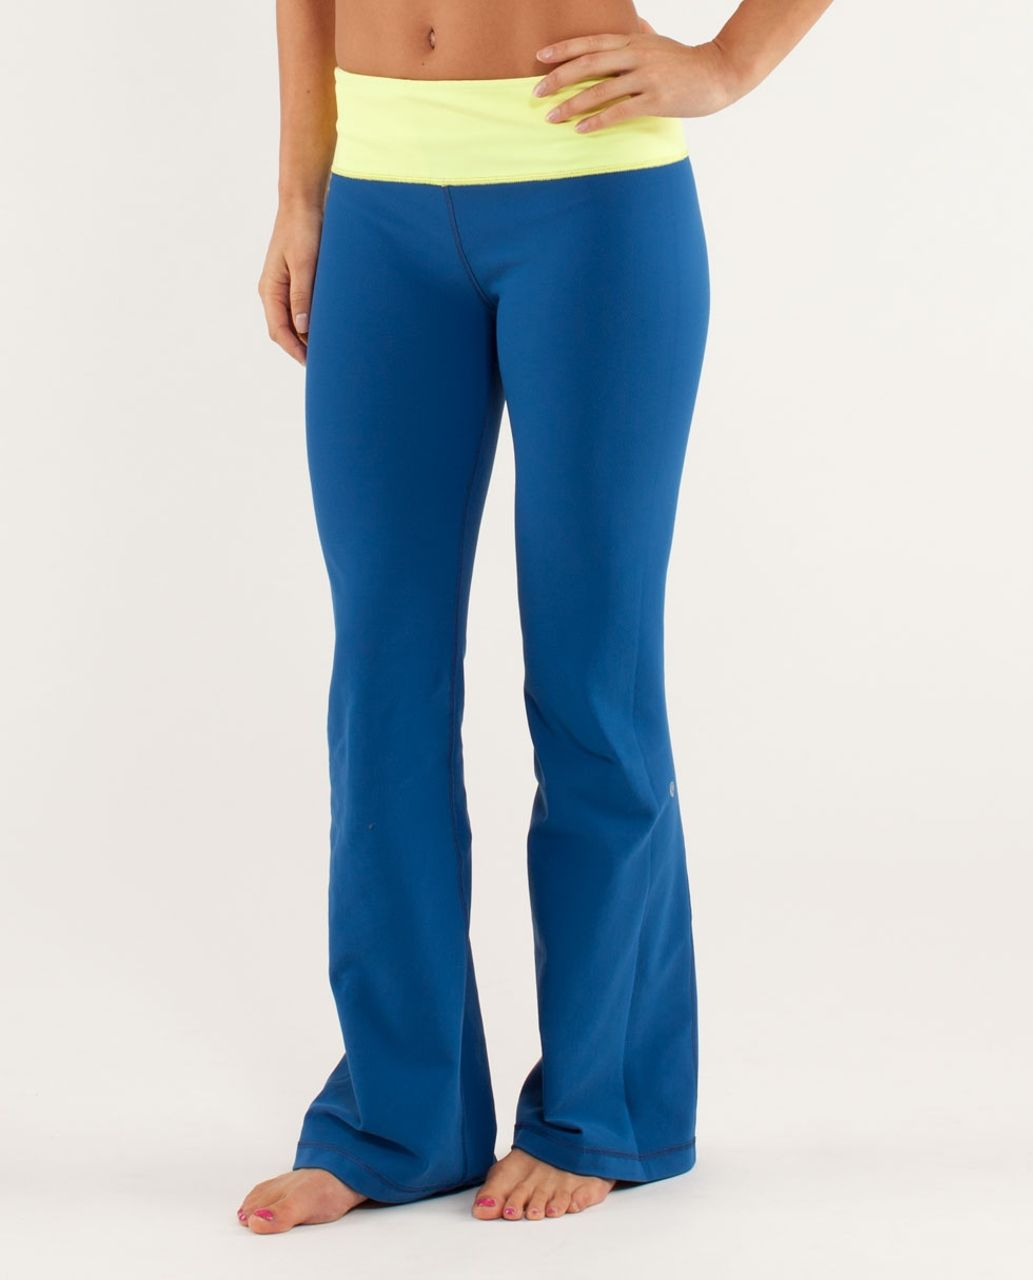 Lululemon Groove Pant *Slim (Tall) - Limitless Blue / Slope Stripe Polar Cream Clarity Yellow / Wee Are From Space Polar Crea